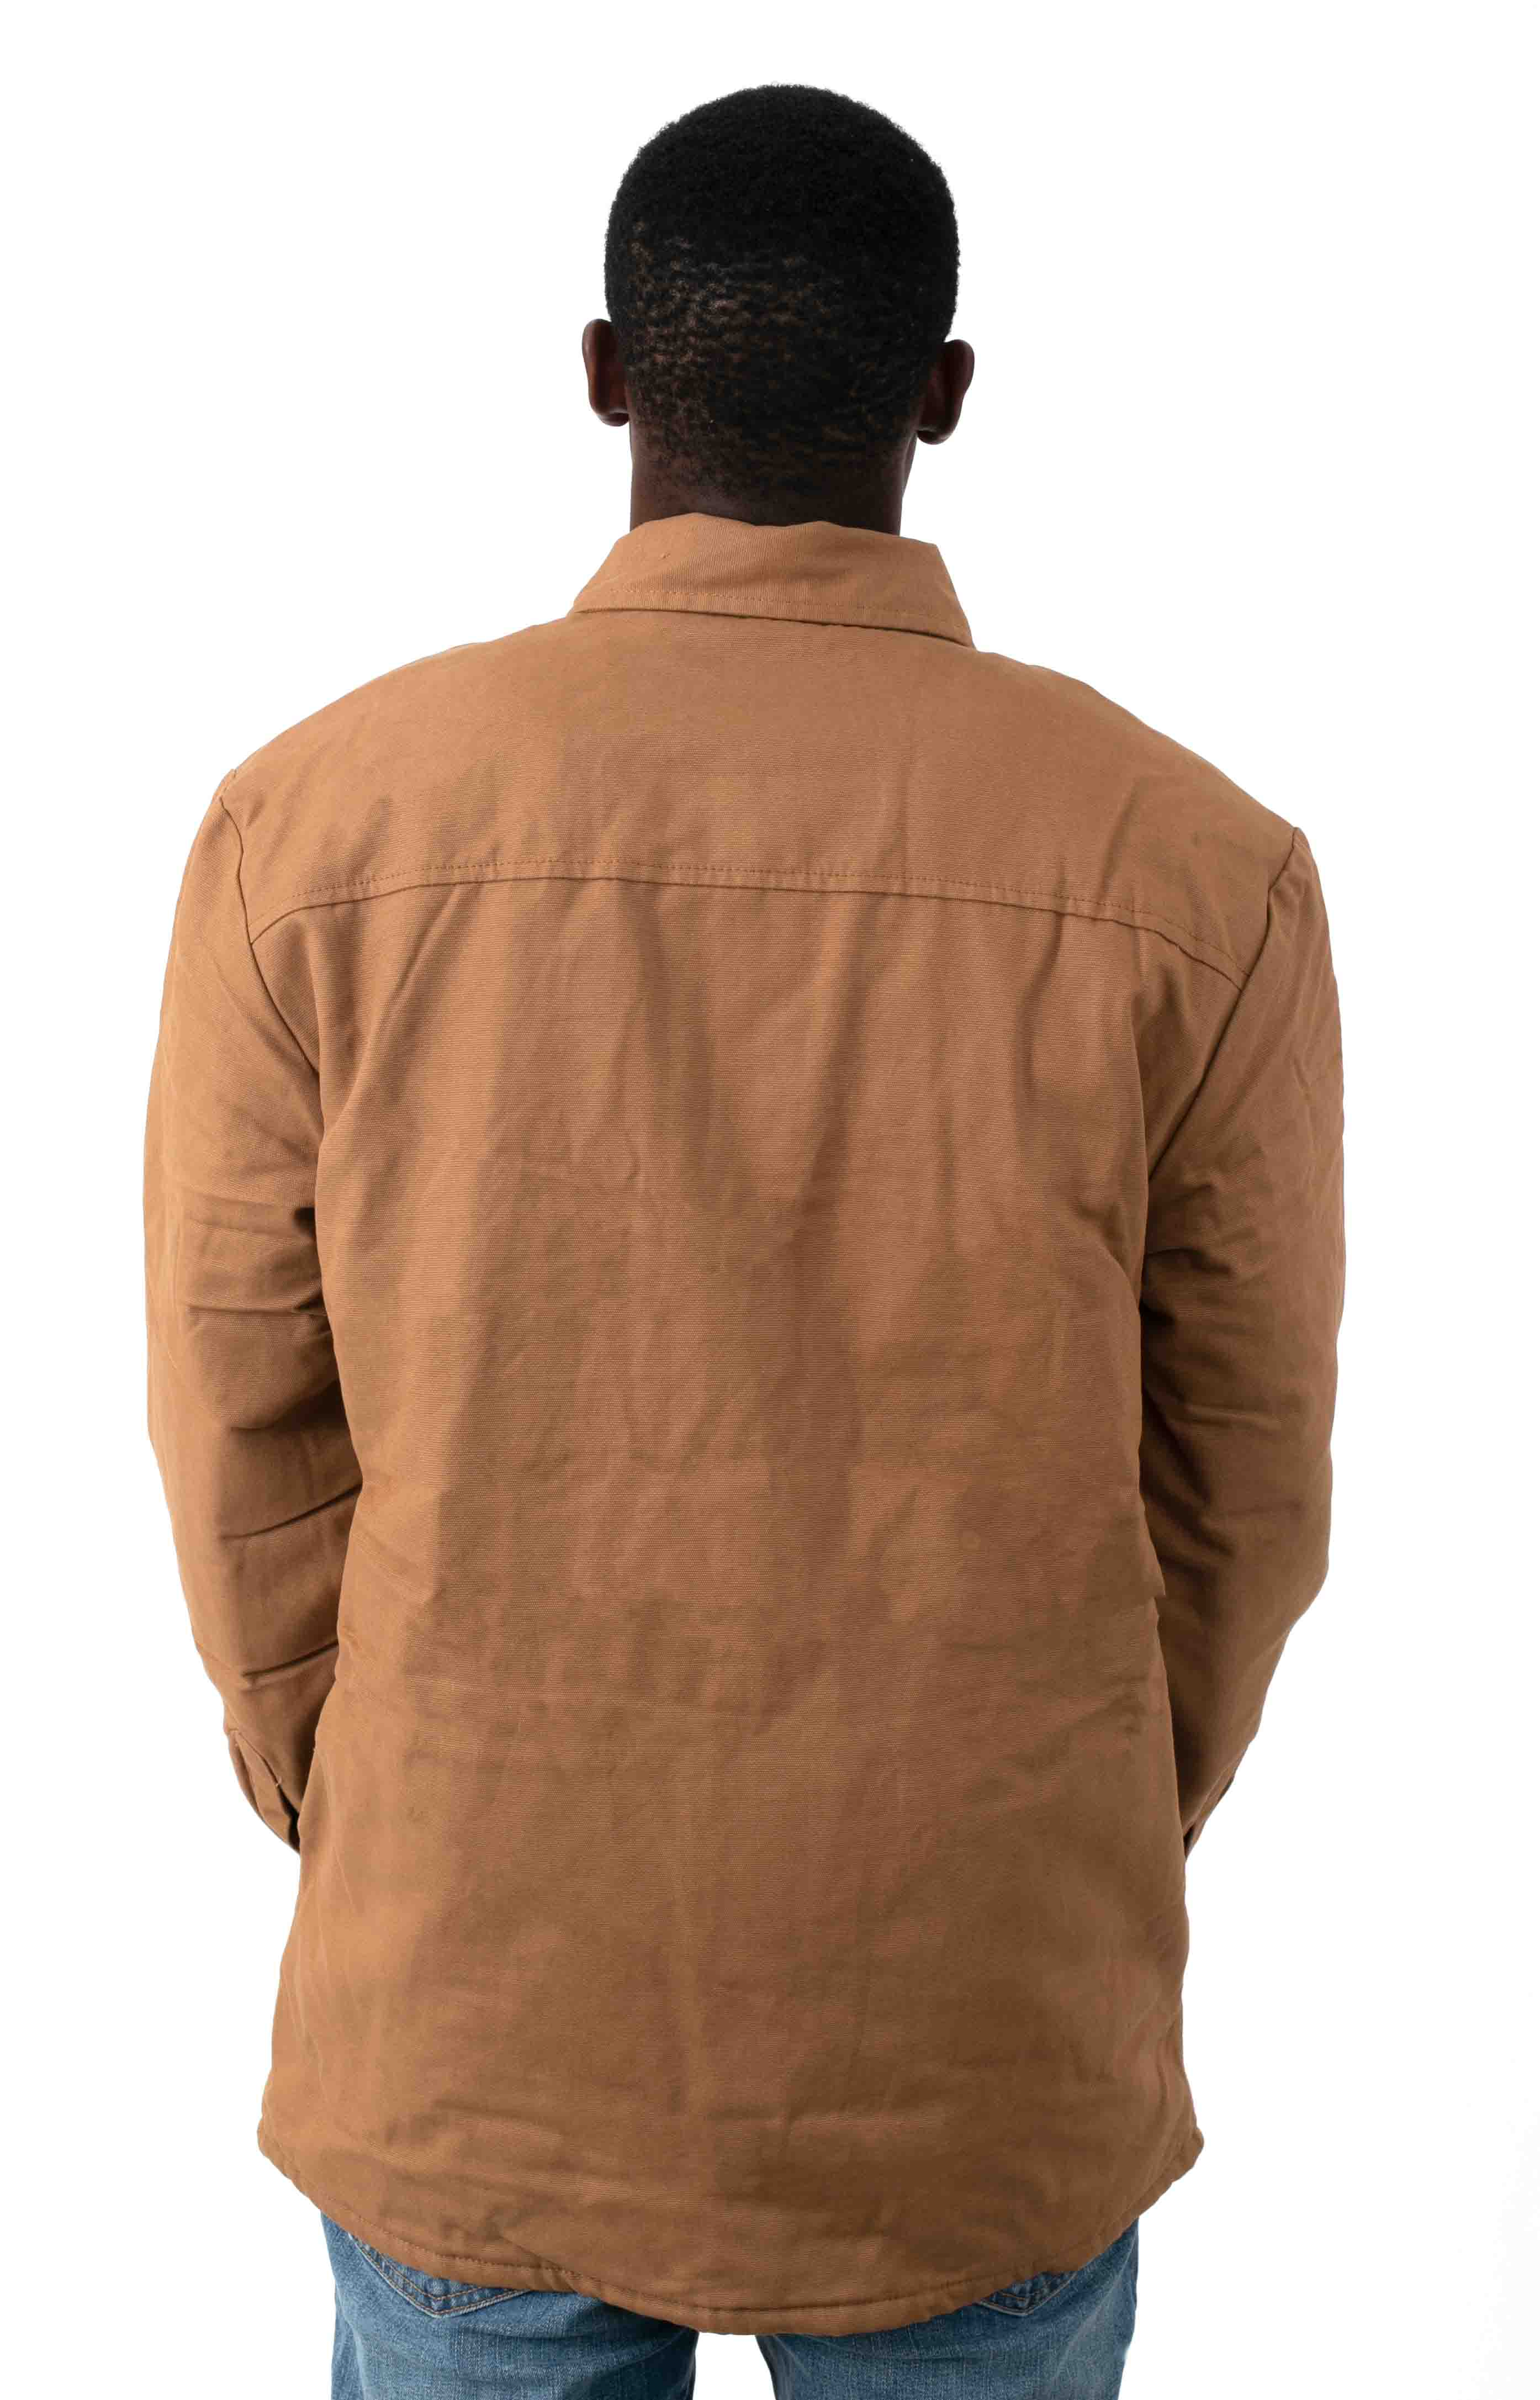 (TJ215BD) Flannel Lined Duck Shirt Jacket with Hydroshield - Brown Duck 3